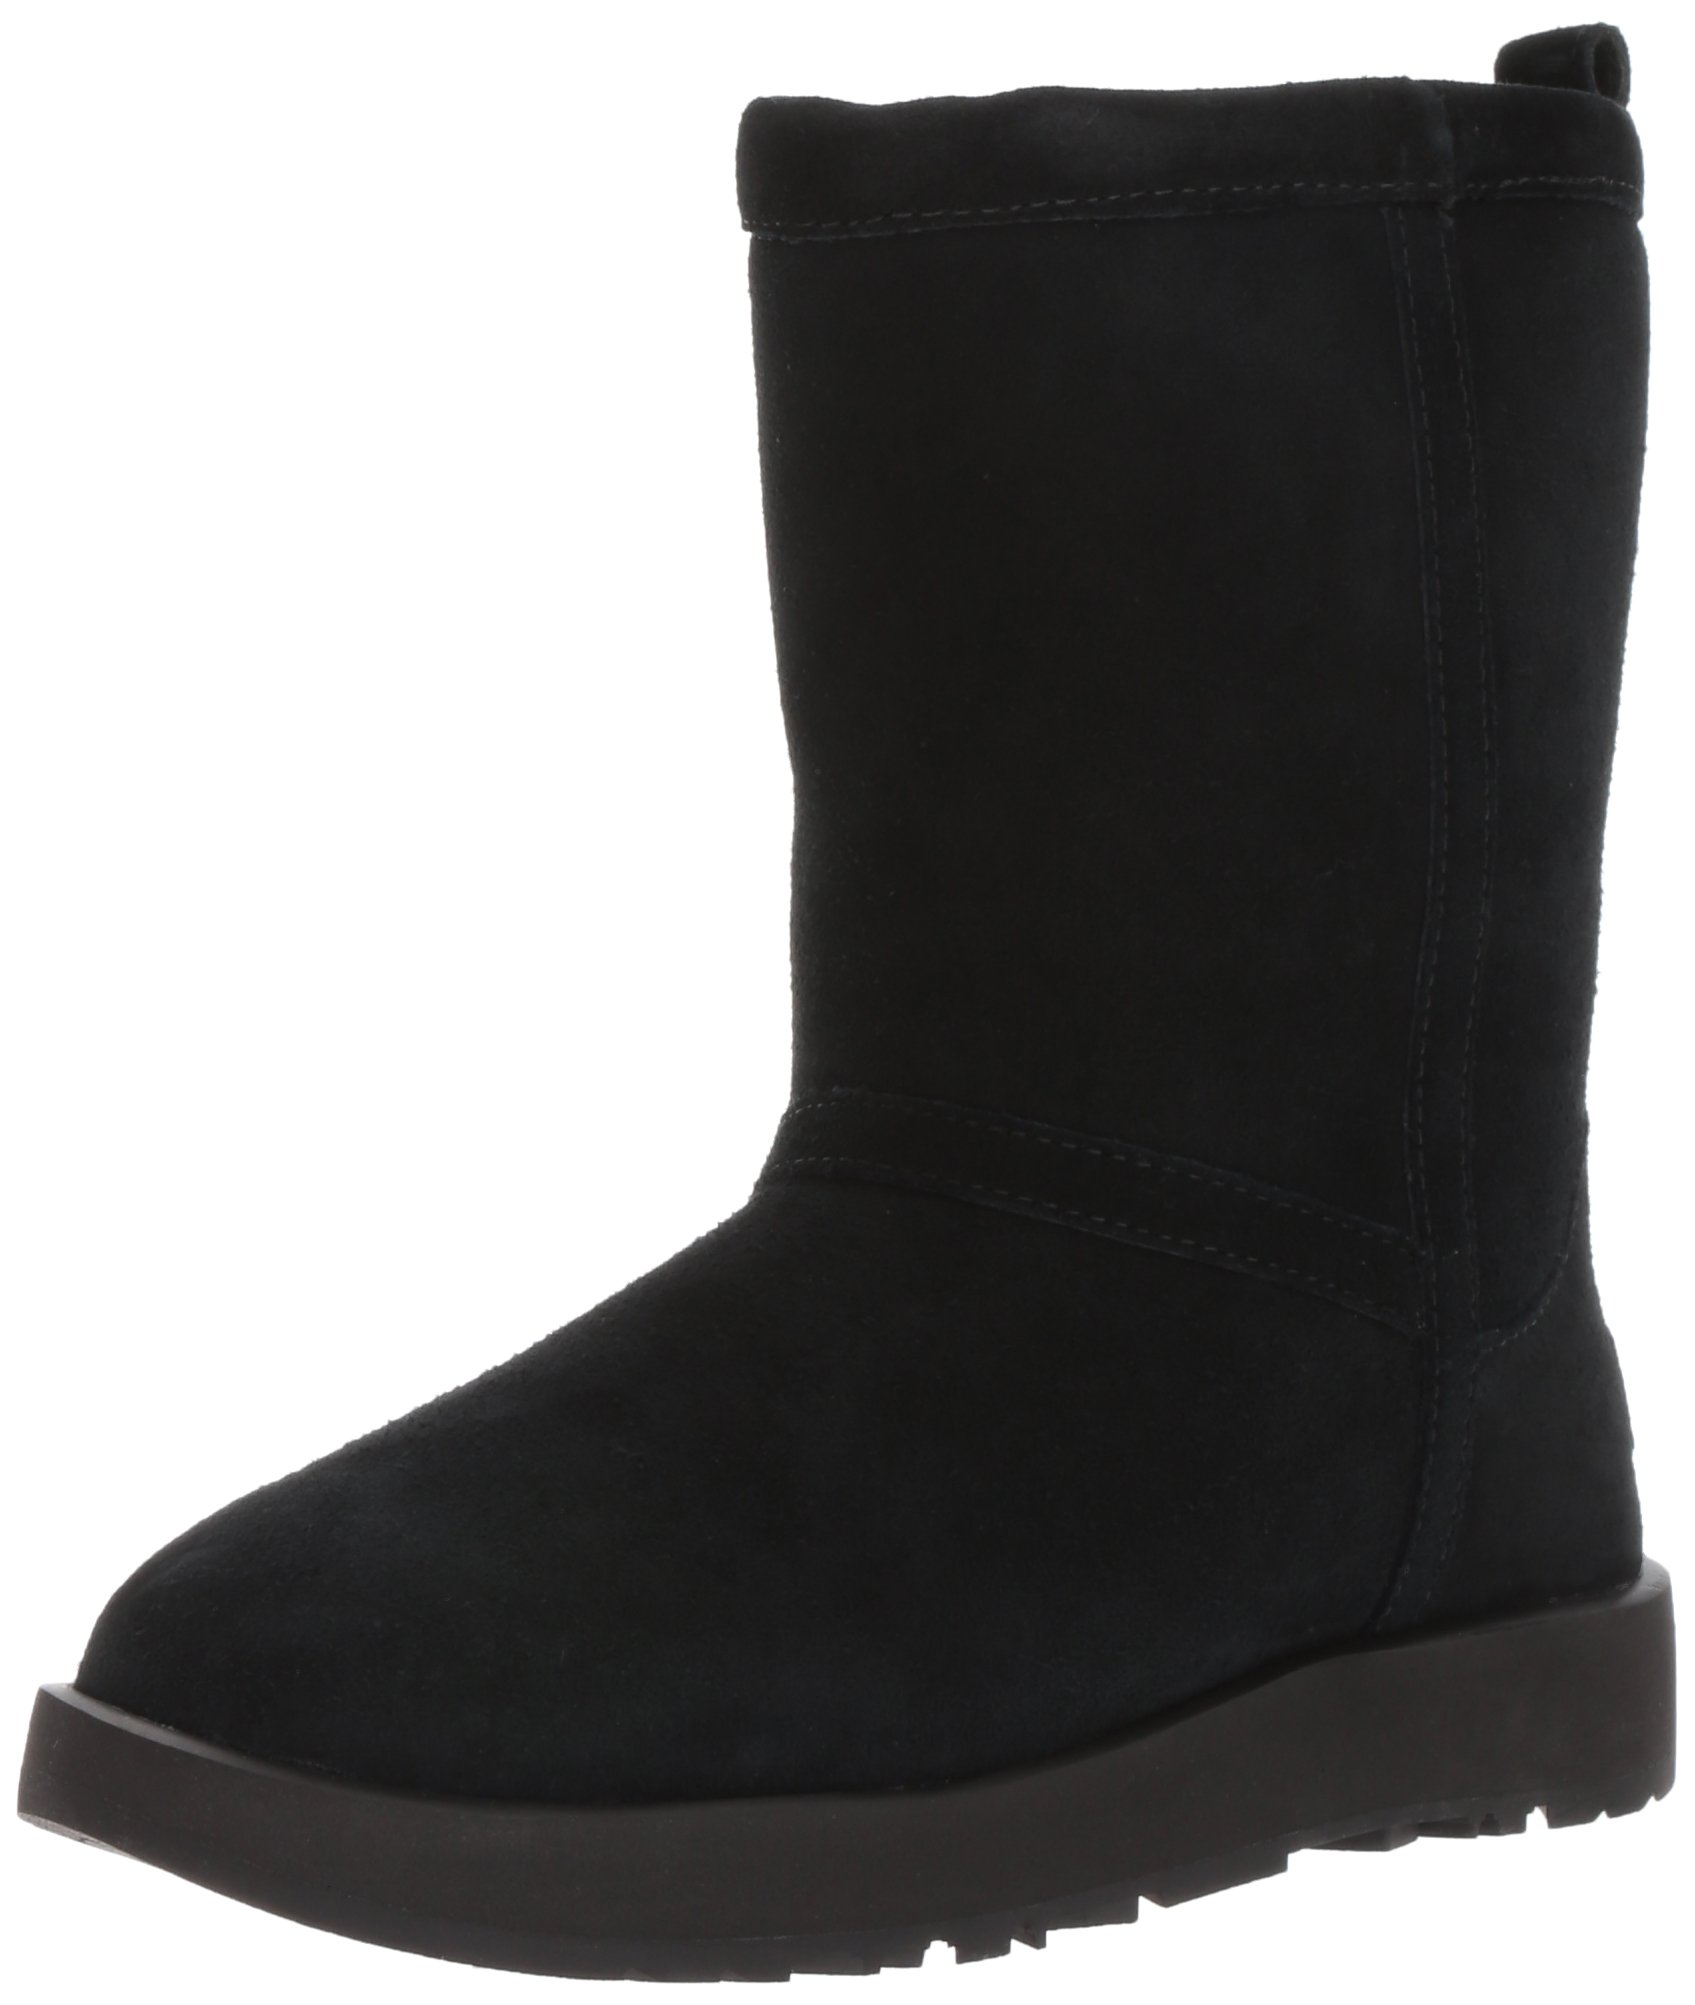 UGG Women's Classic Short Waterproof Snow Boot, Black, 9 M US